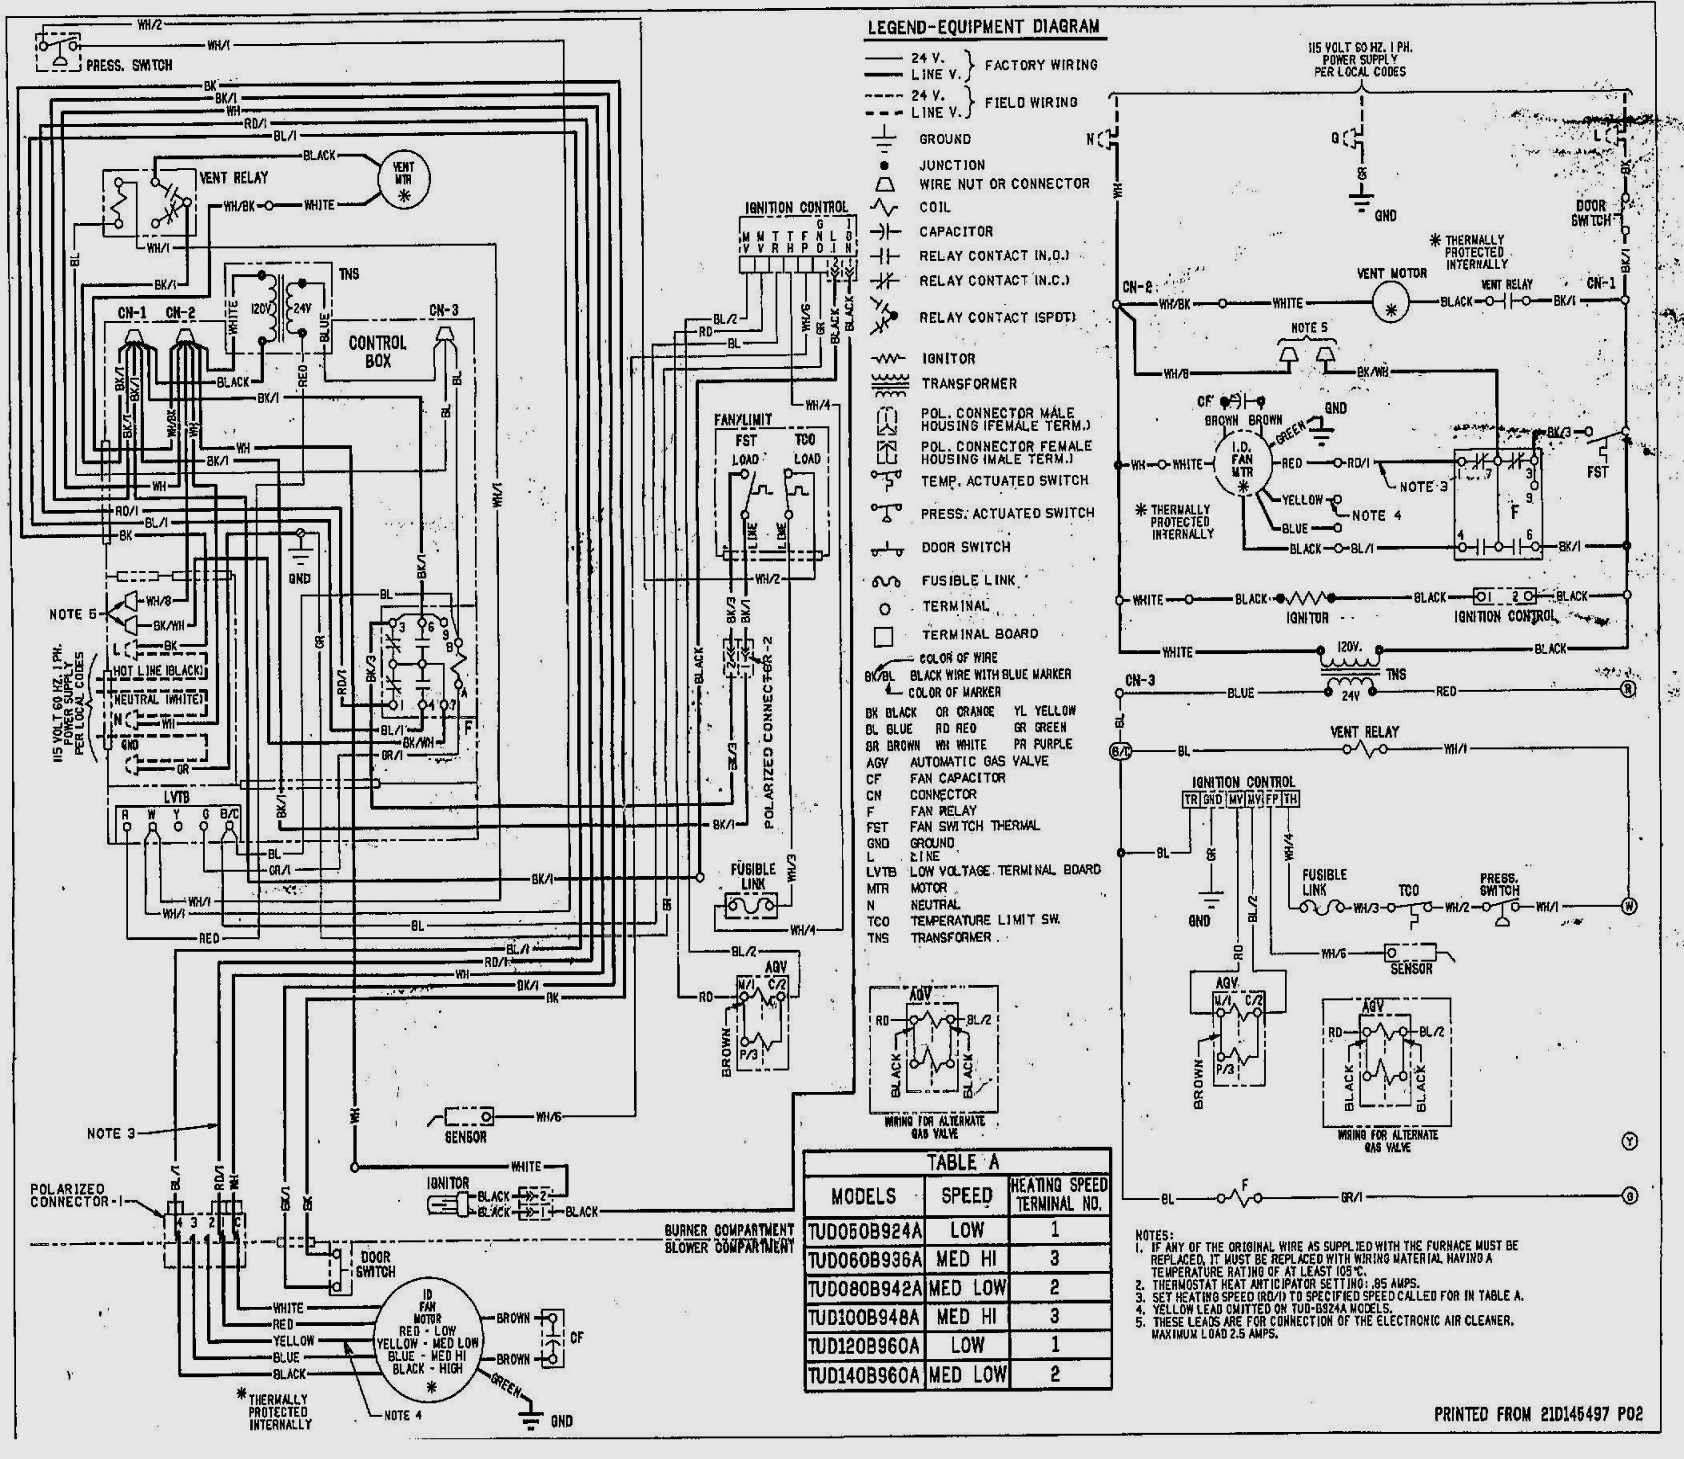 New Wiring Diagram Ac Fan Motor Thermostat Wiring Electric Furnace Furnace